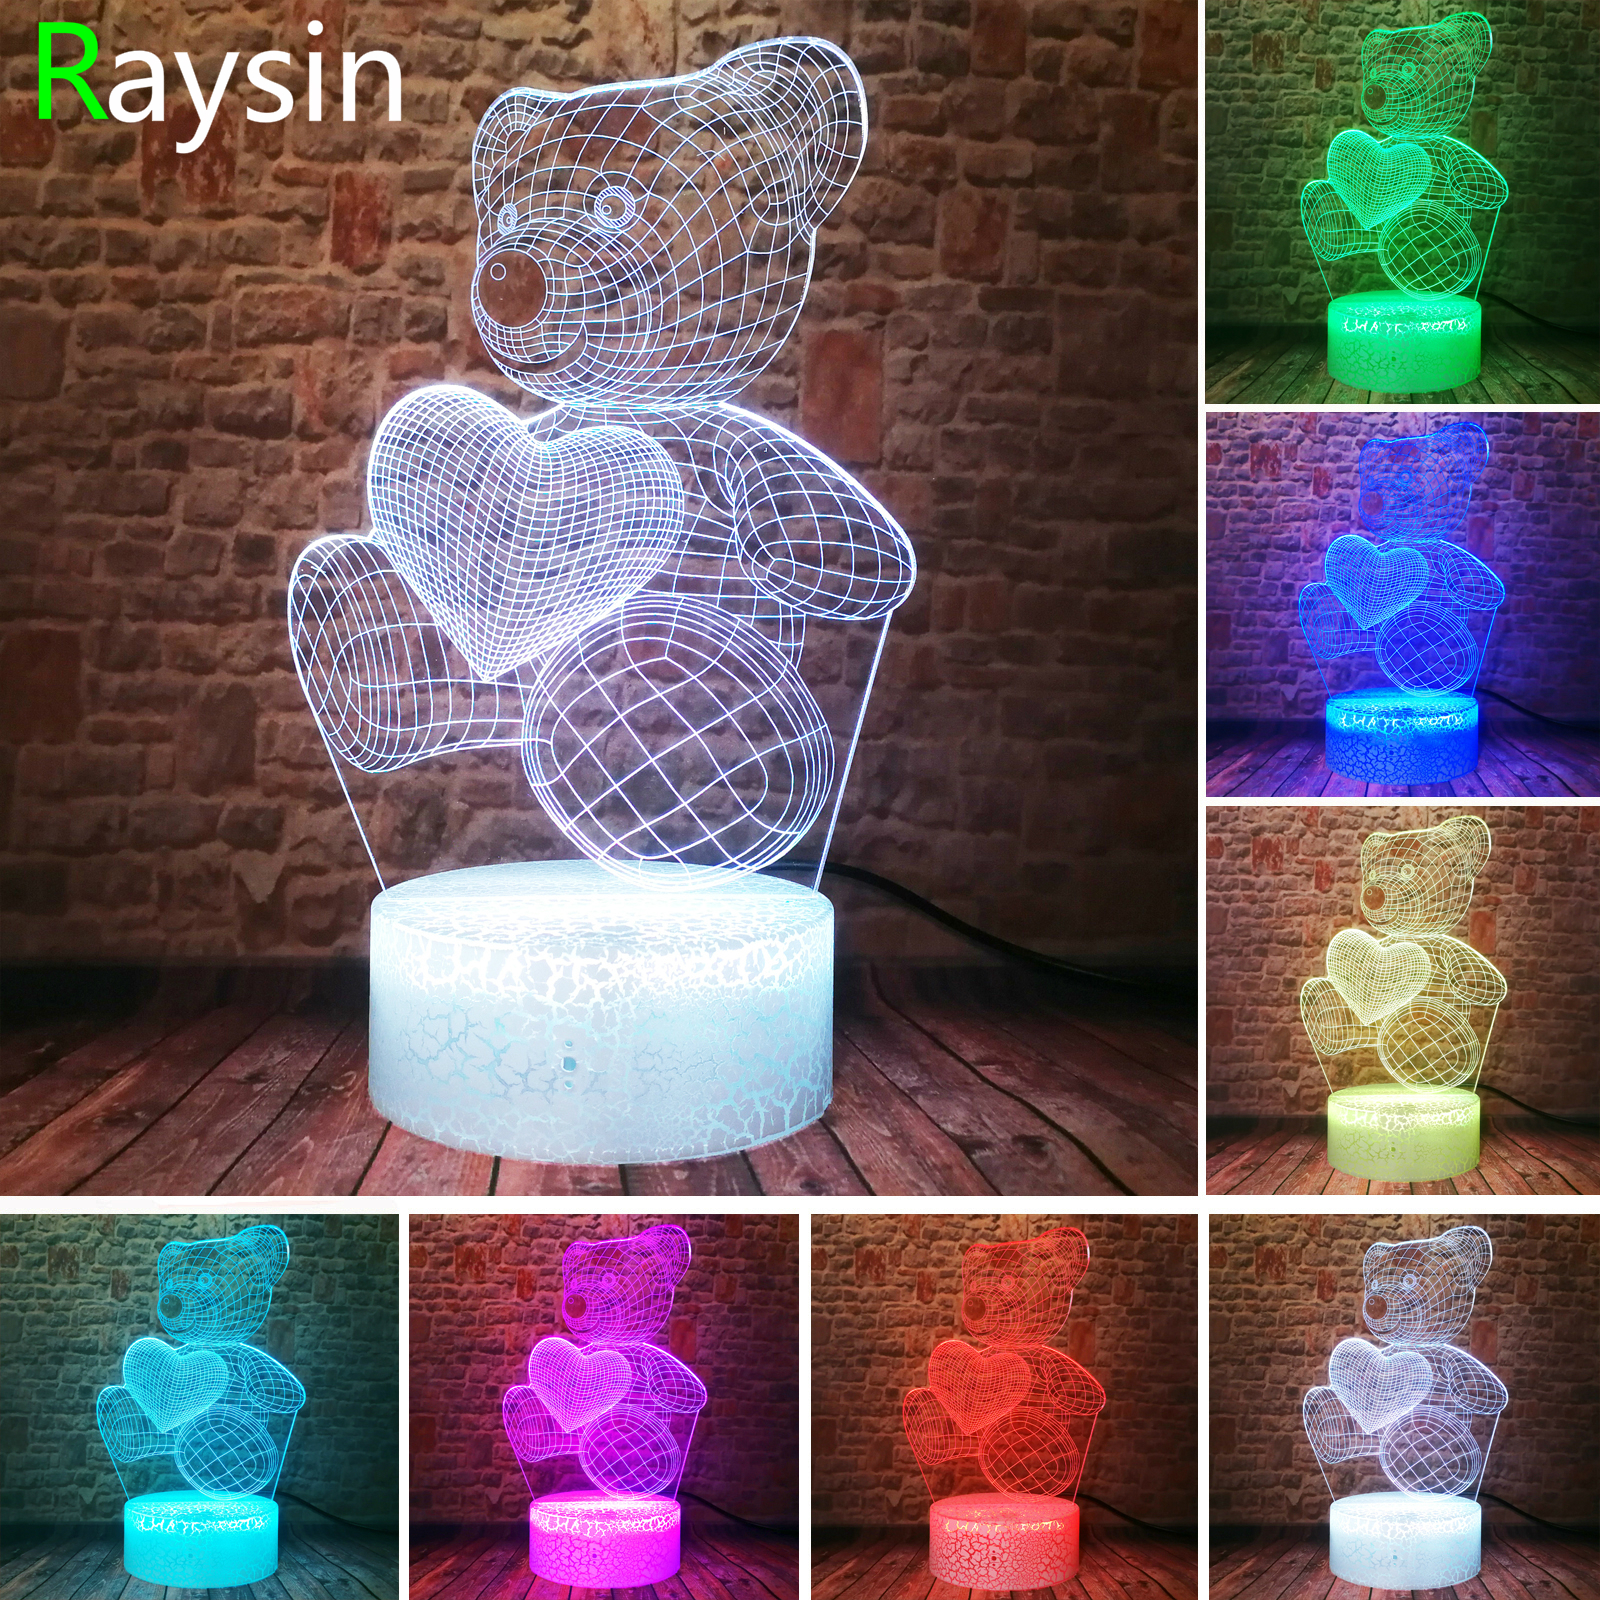 3D Night Light Teddy Bear Optical Illusion Smart Touch Control Lamp 7 Colors Change LED Perfect Birthday Gifts For Girls Kids